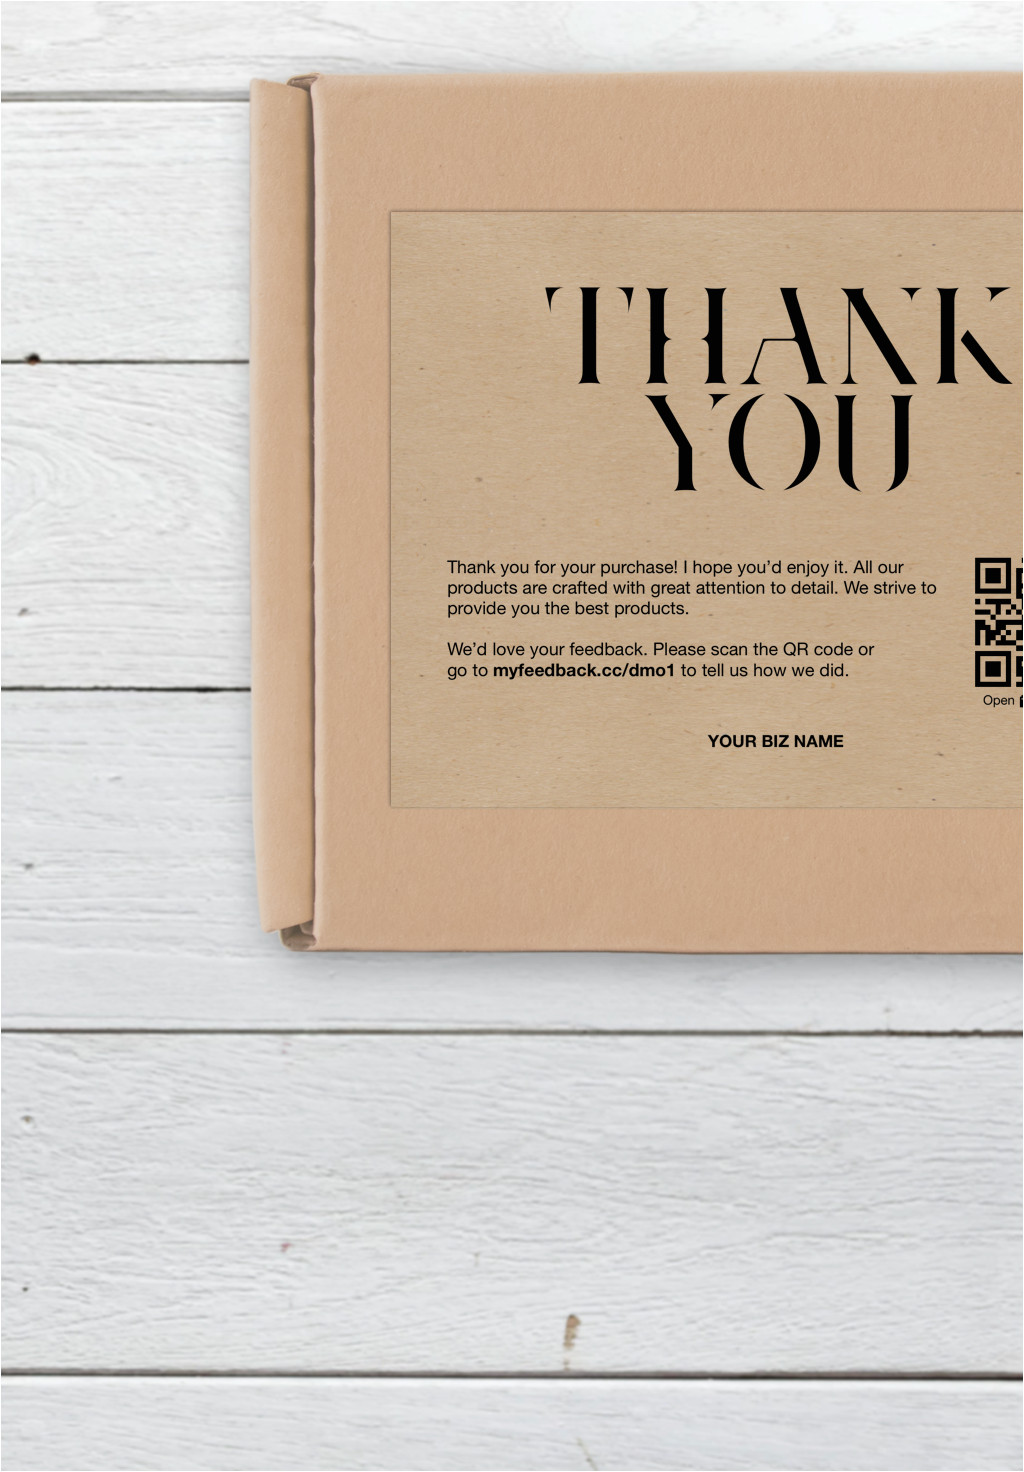 Image Of Thank You Card Business Thank You Card Thank You for Your Purchase